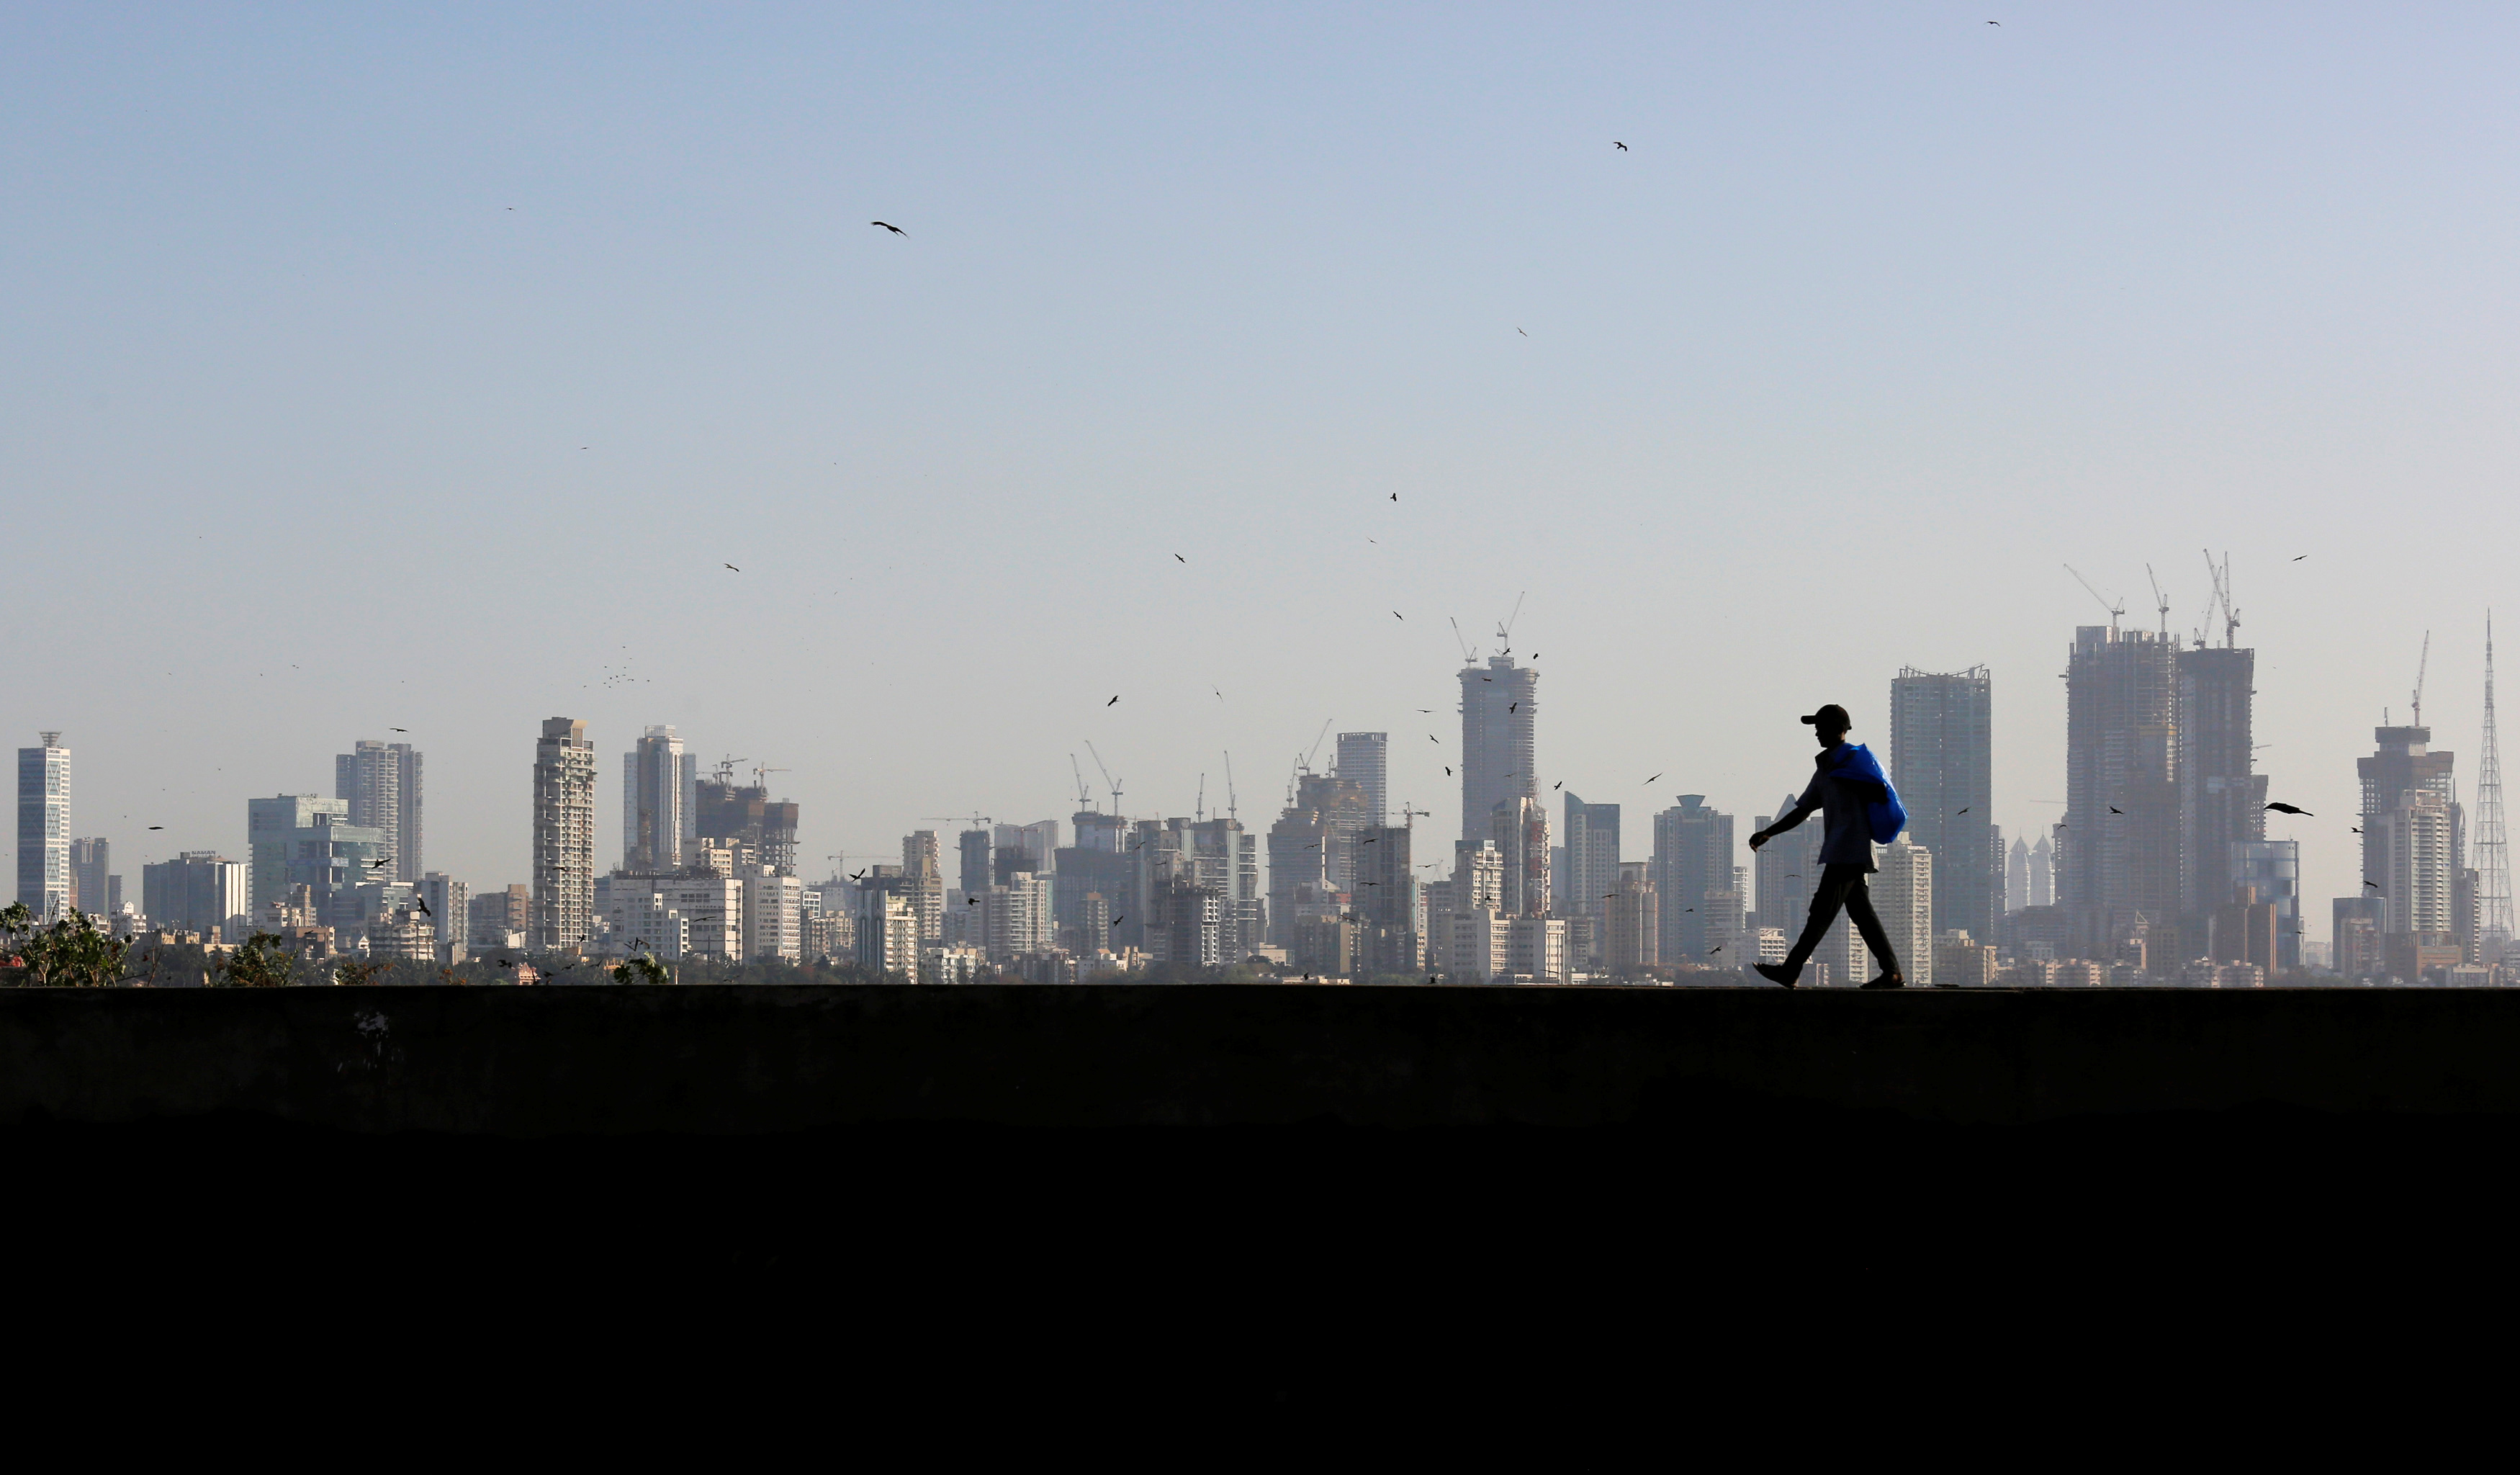 A man walks along a wall overlooking the central Mumbai's financial district skyline, India, March 9, 2017. REUTERS/Danish Siddiqui